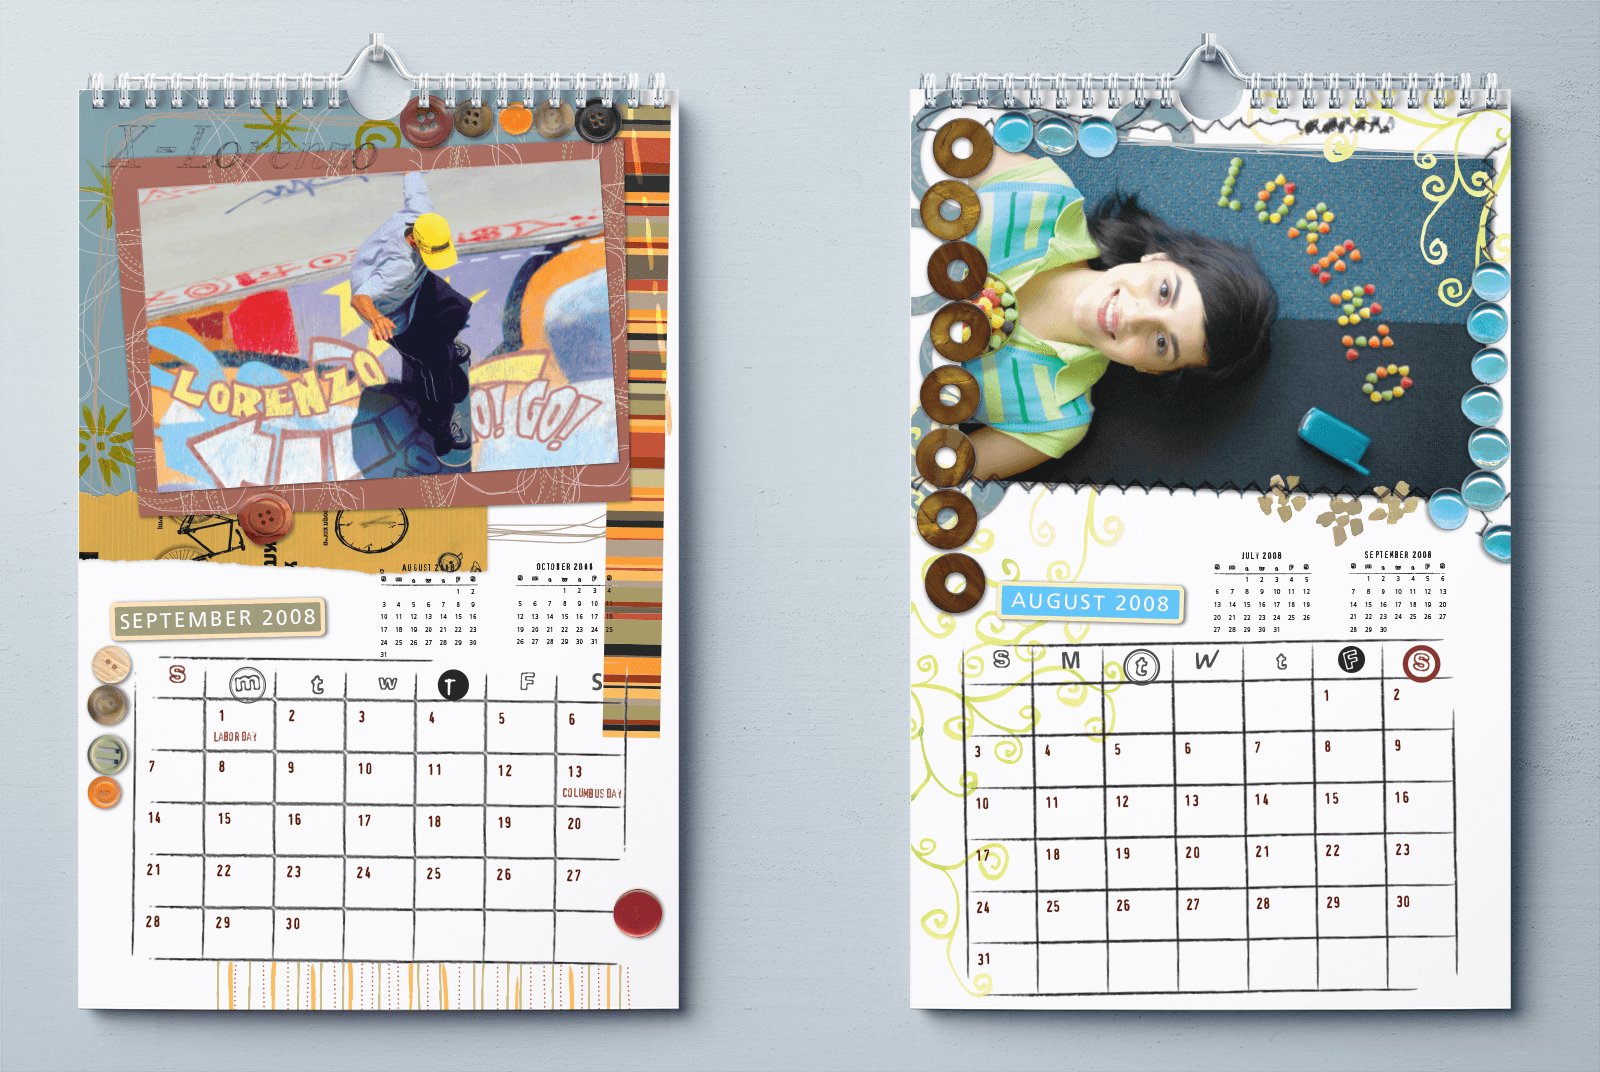 http://bigeyes.co.il/wp-content/uploads/2019/07/highschool-calendar-2.png